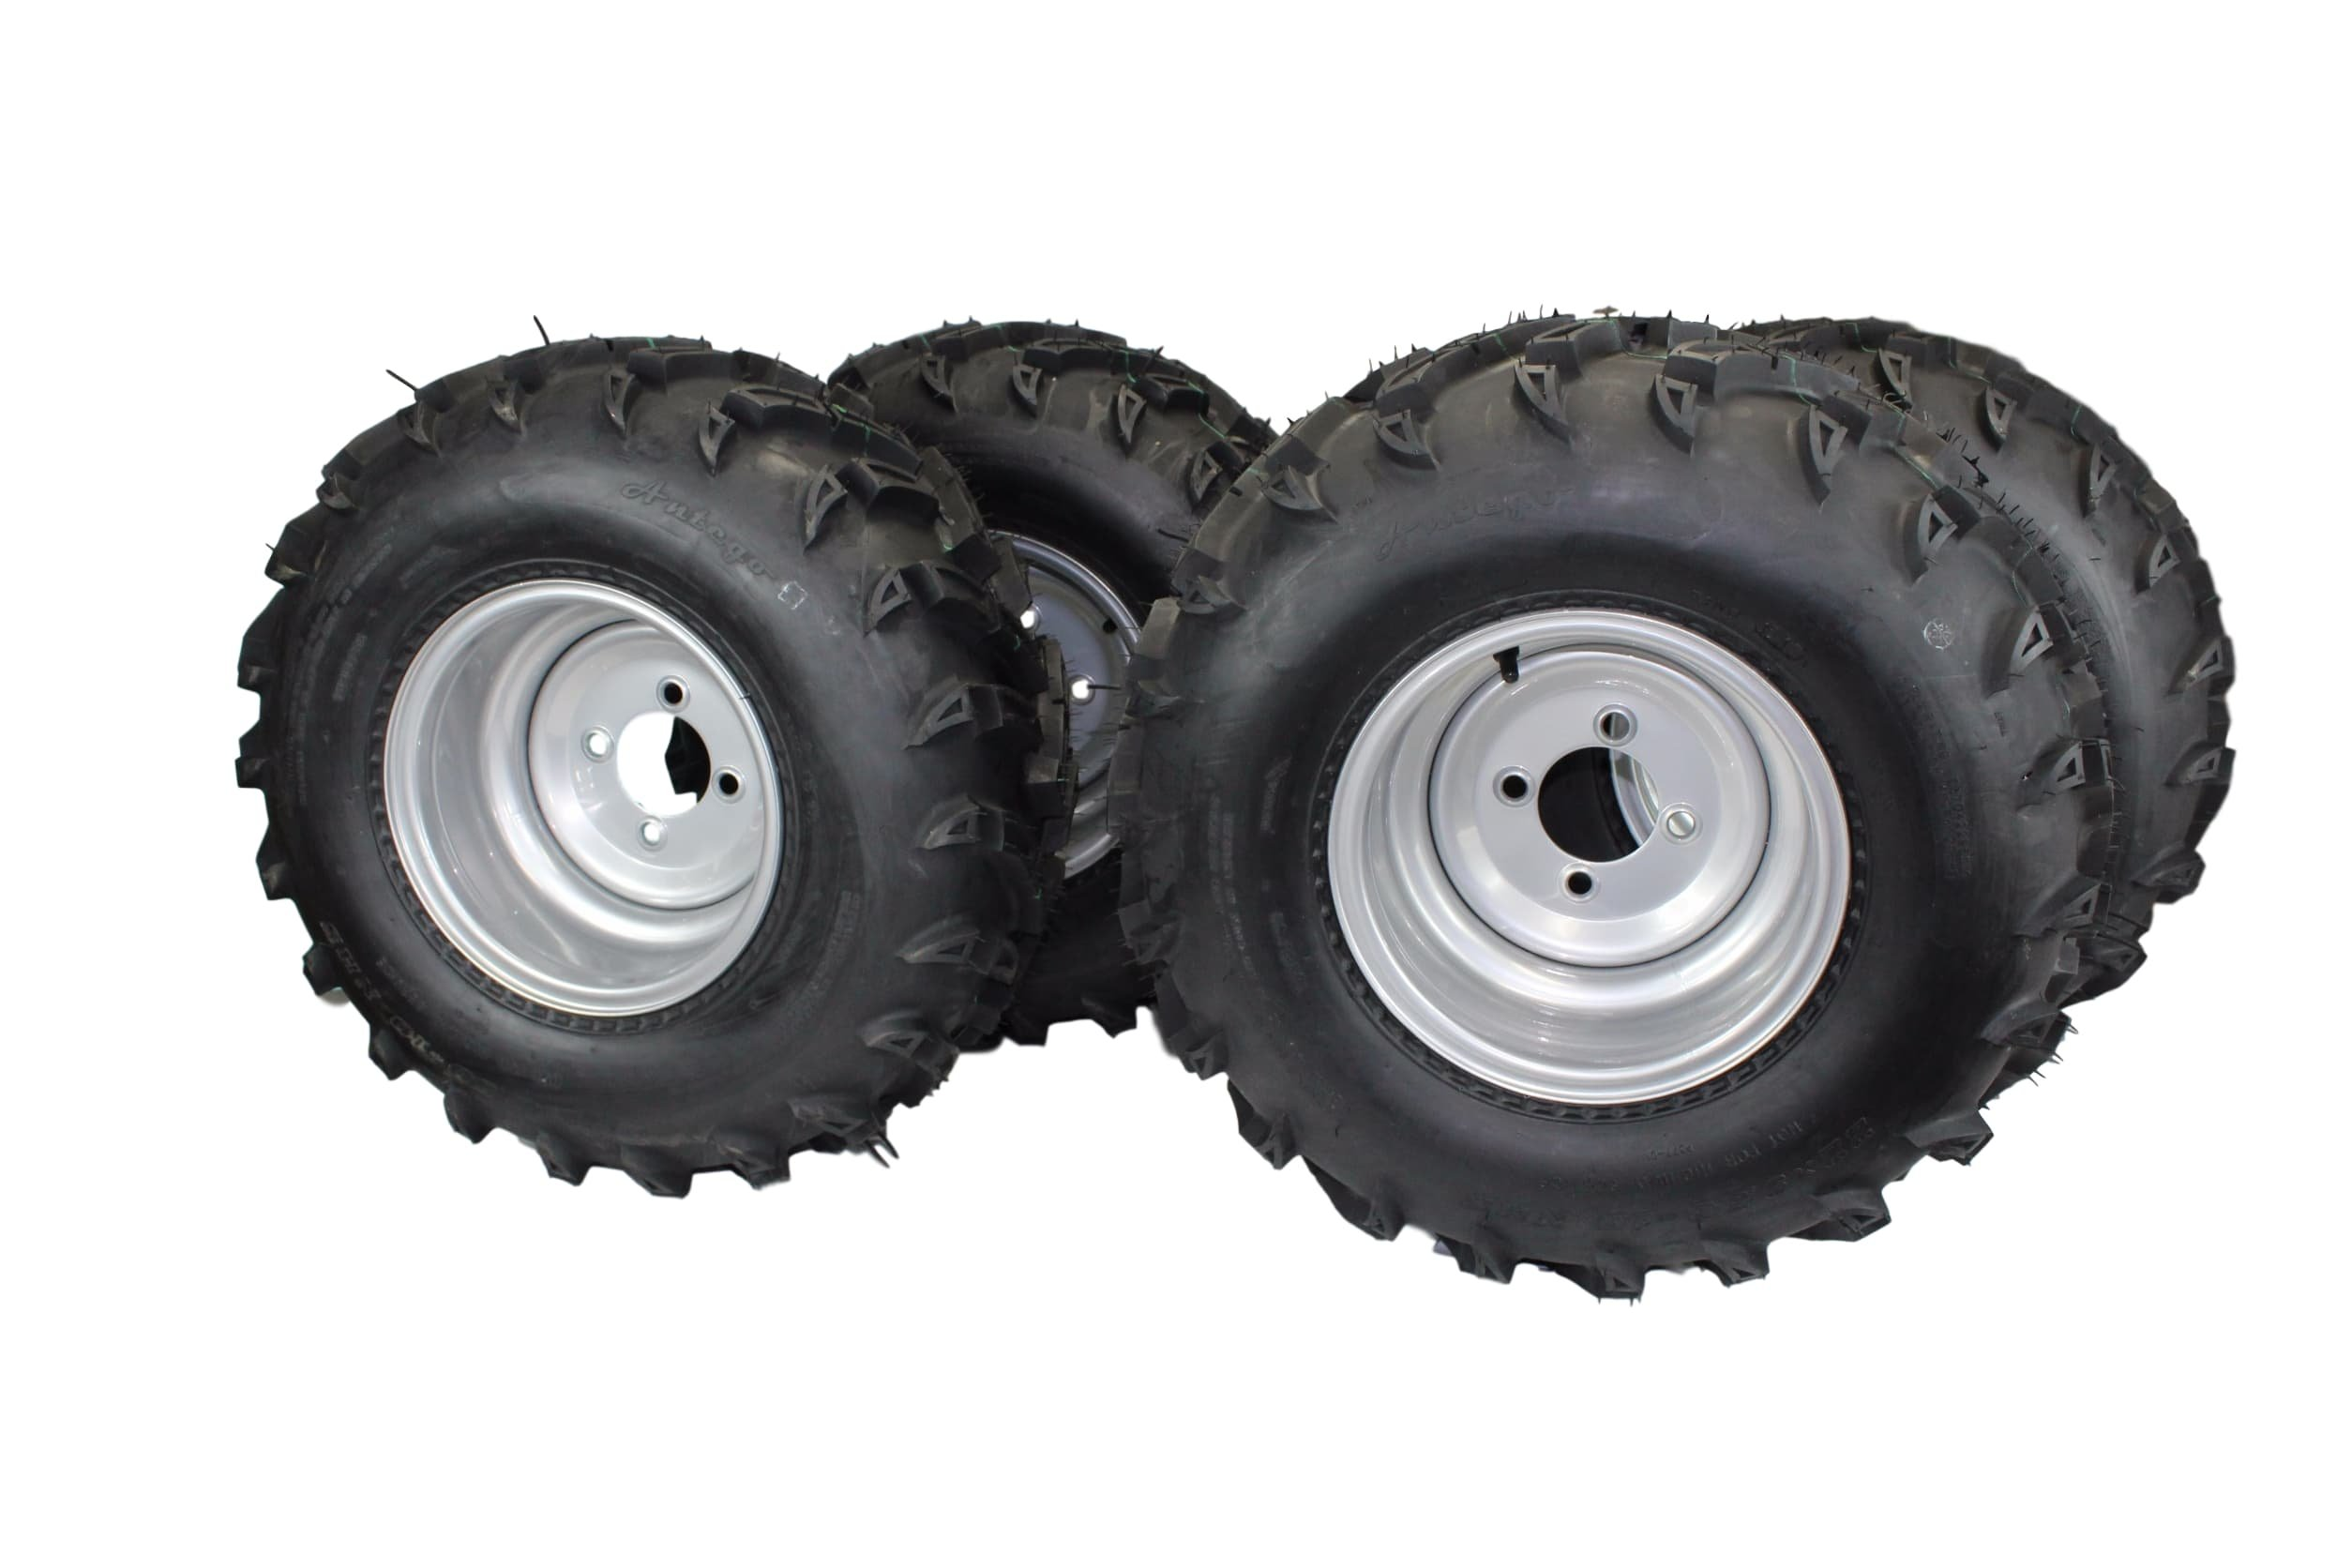 22x9.50-10 with 10x7 Silver Wheels for ATV (Set of 4)